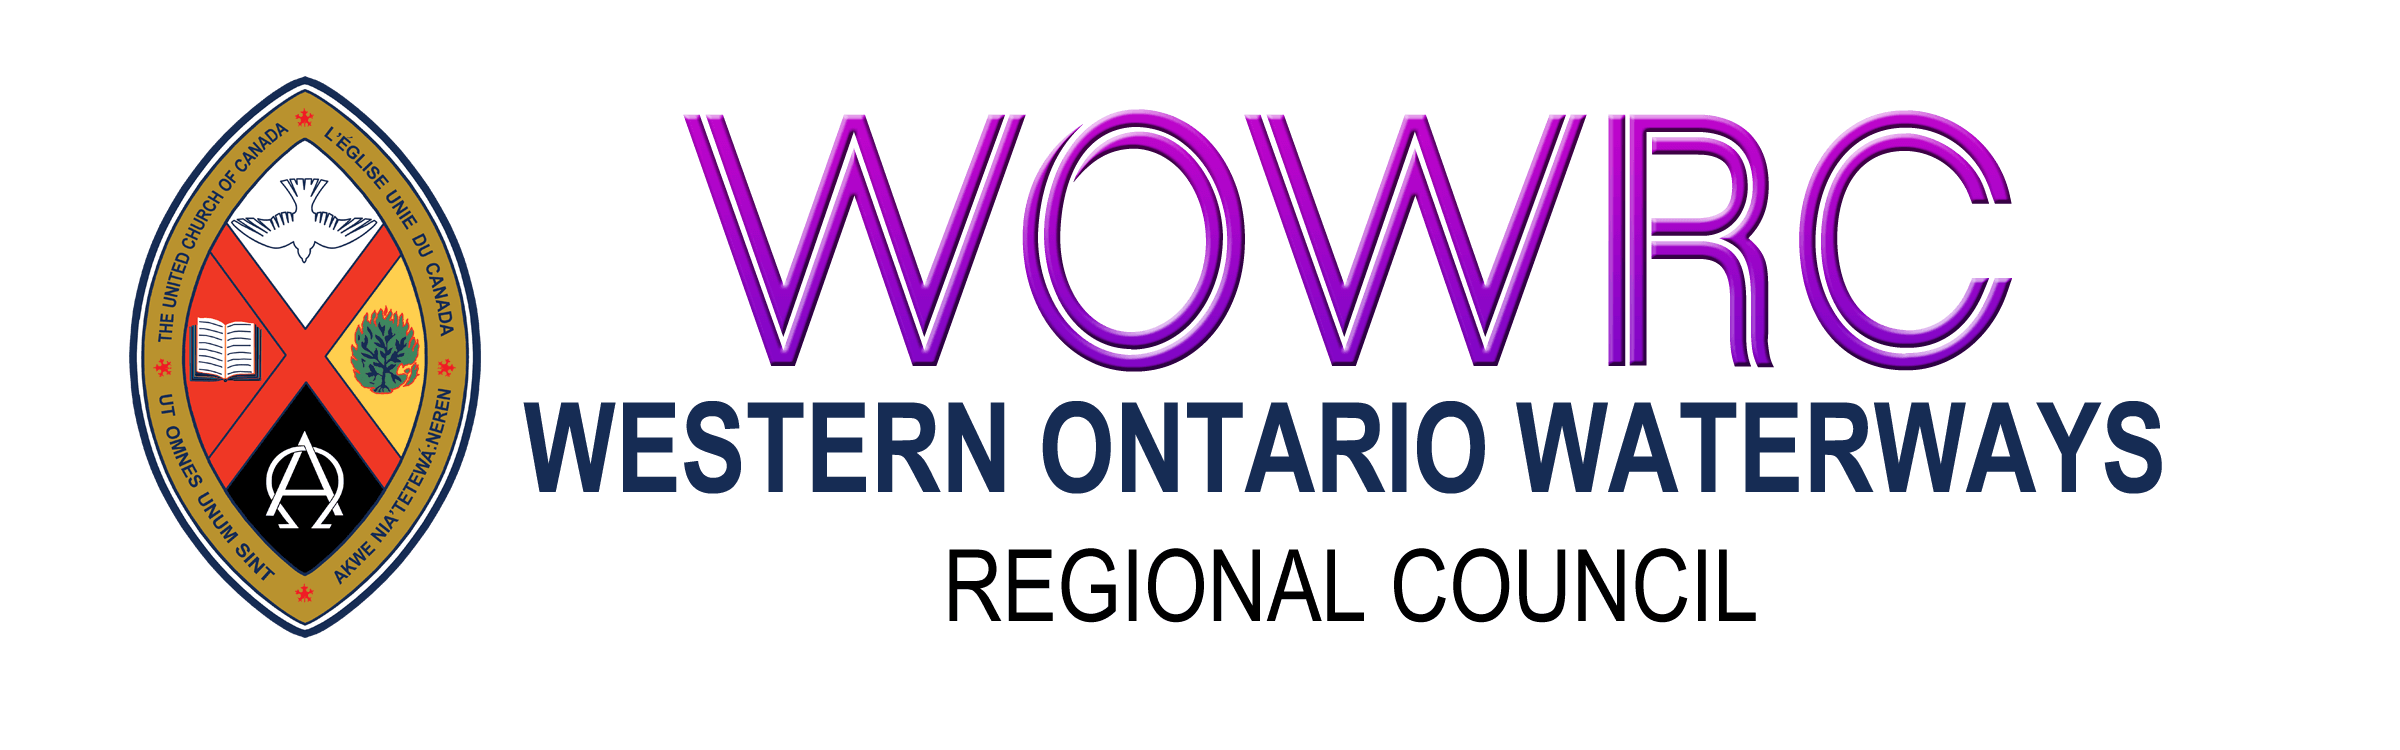 Western Ontario Waterways Regional Council